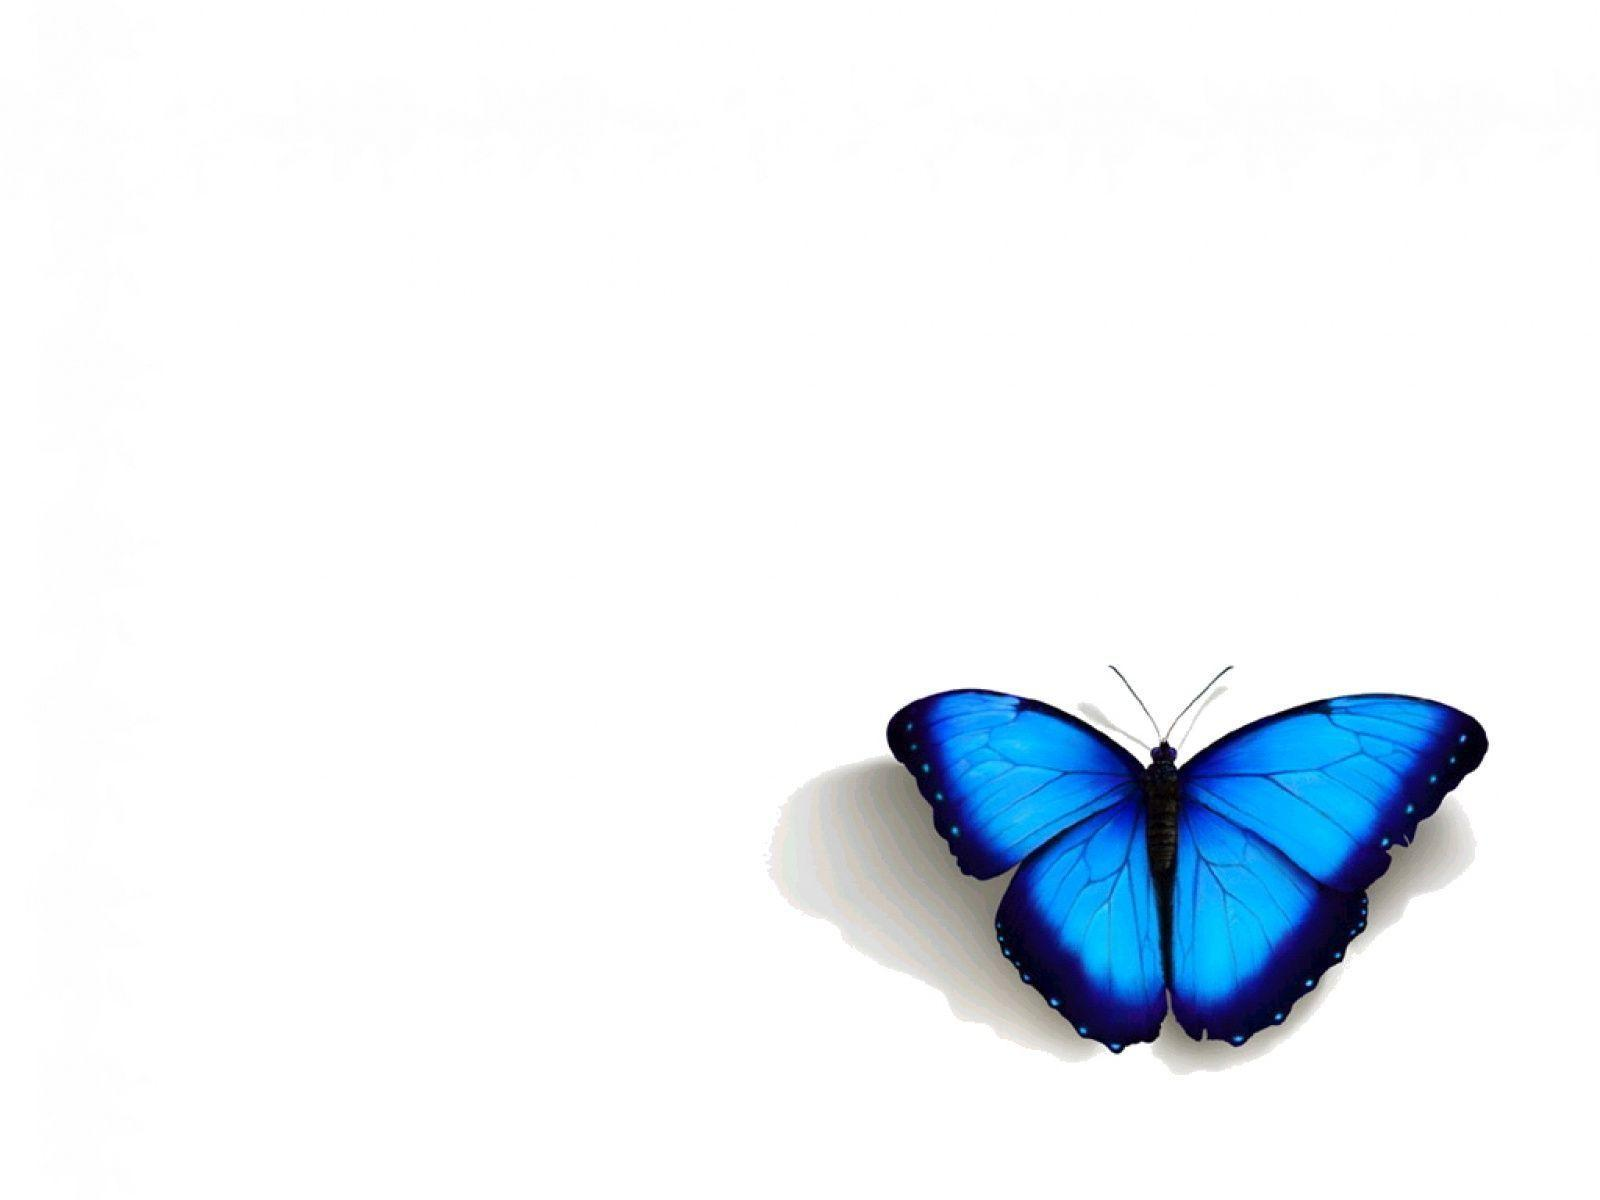 butterfly blue abstract wallpaper - photo #31